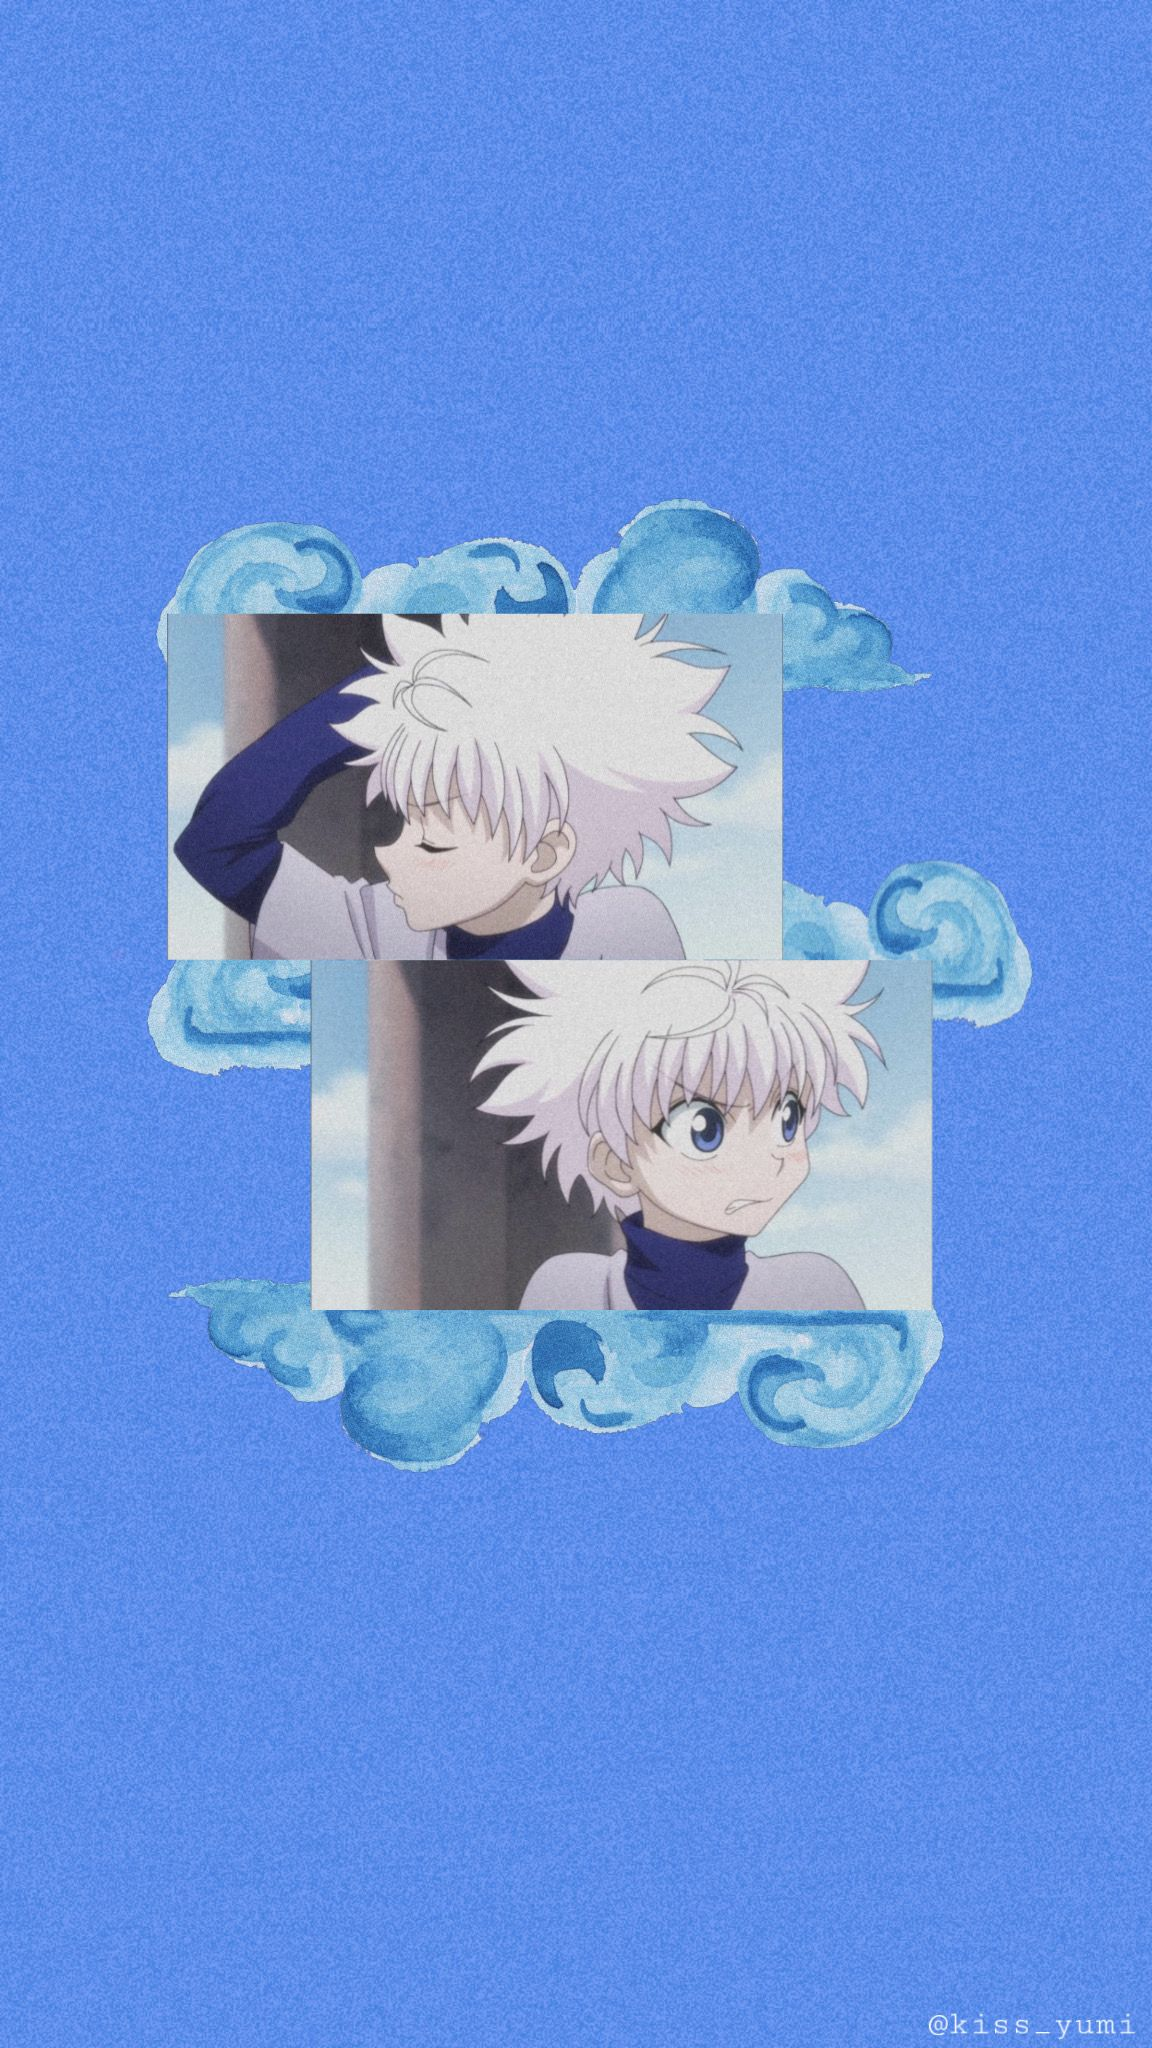 Killua In 2020 Cute Anime Wallpaper Anime Wallpaper Blue Anime